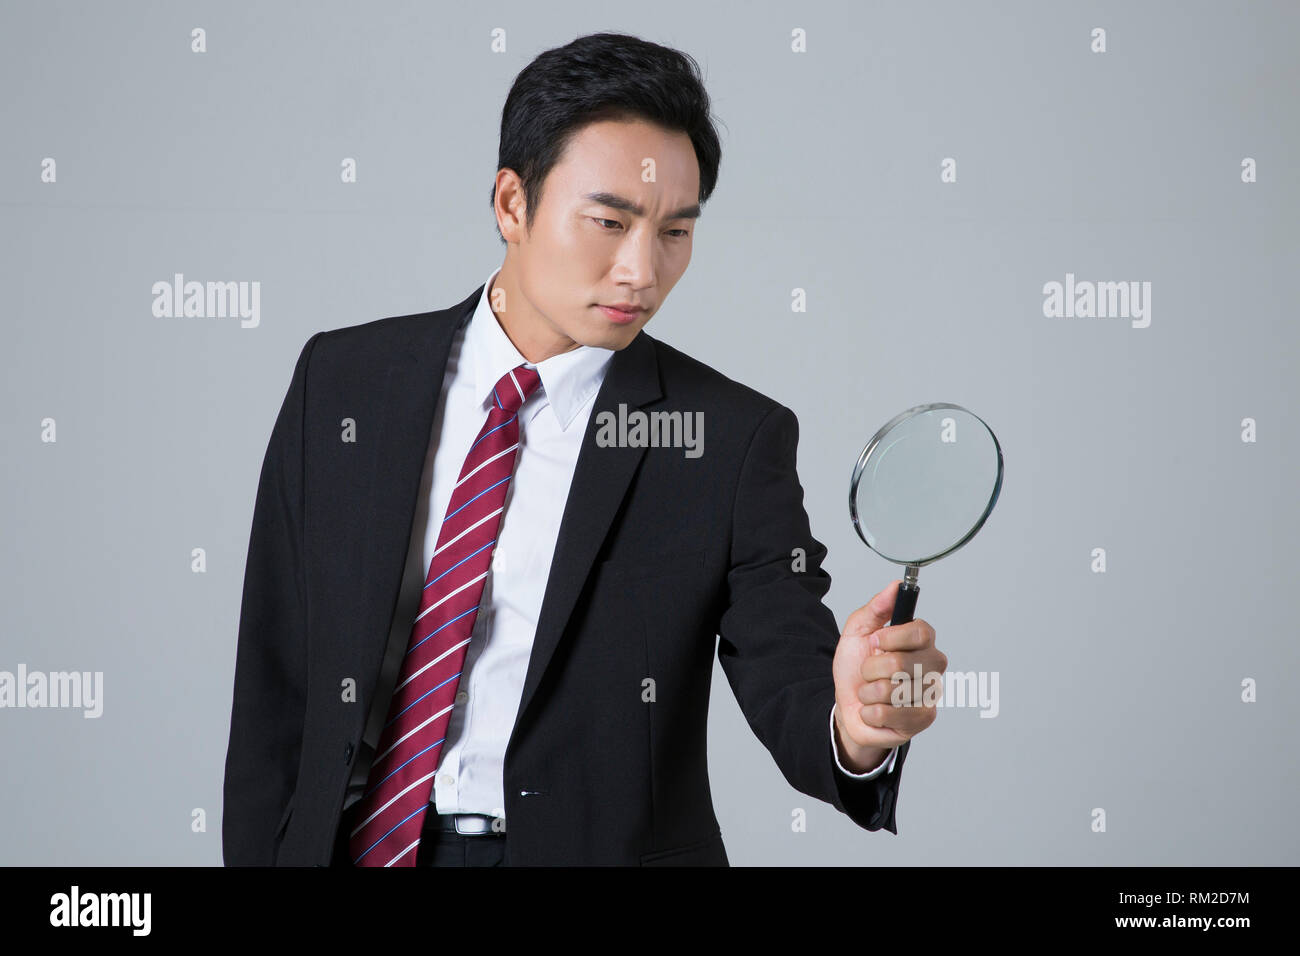 Young businessman concept photo. 095 - Stock Image